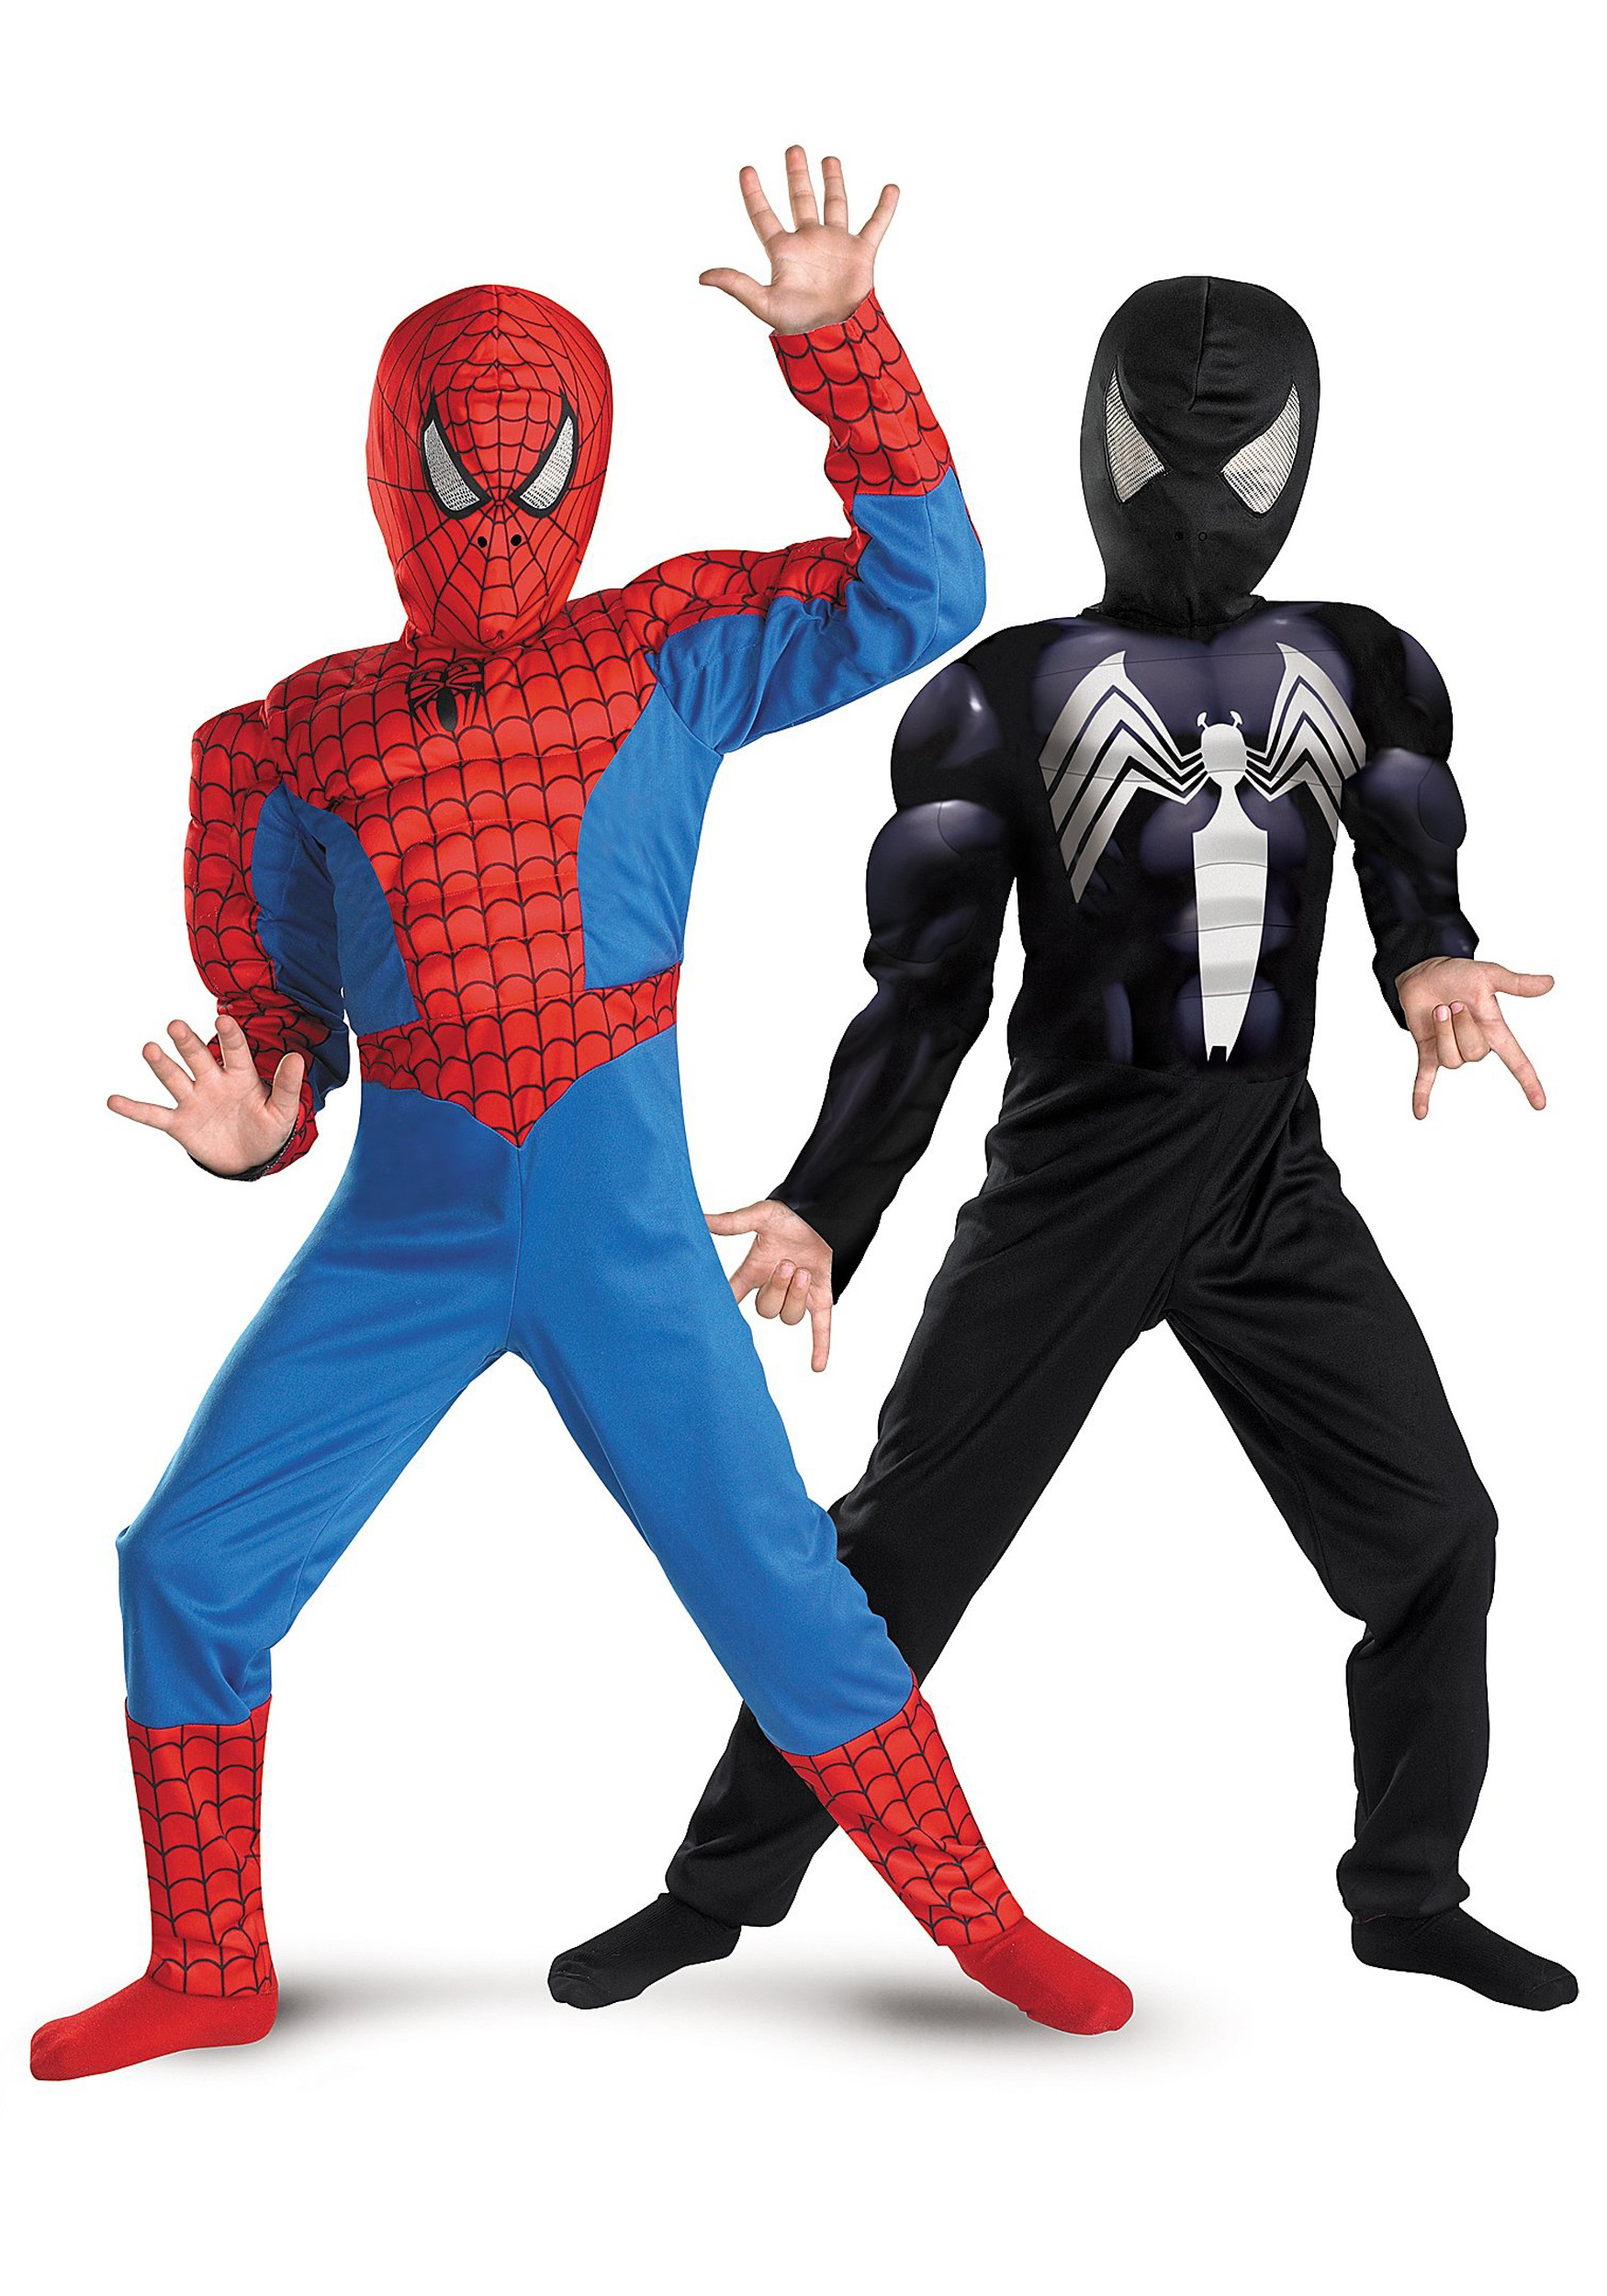 Child Reversible Muscle Chest Spiderman Costume  sc 1 st  Halloween Costumes & Child Reversible Muscle Chest Spiderman Costume - Halloween Costumes